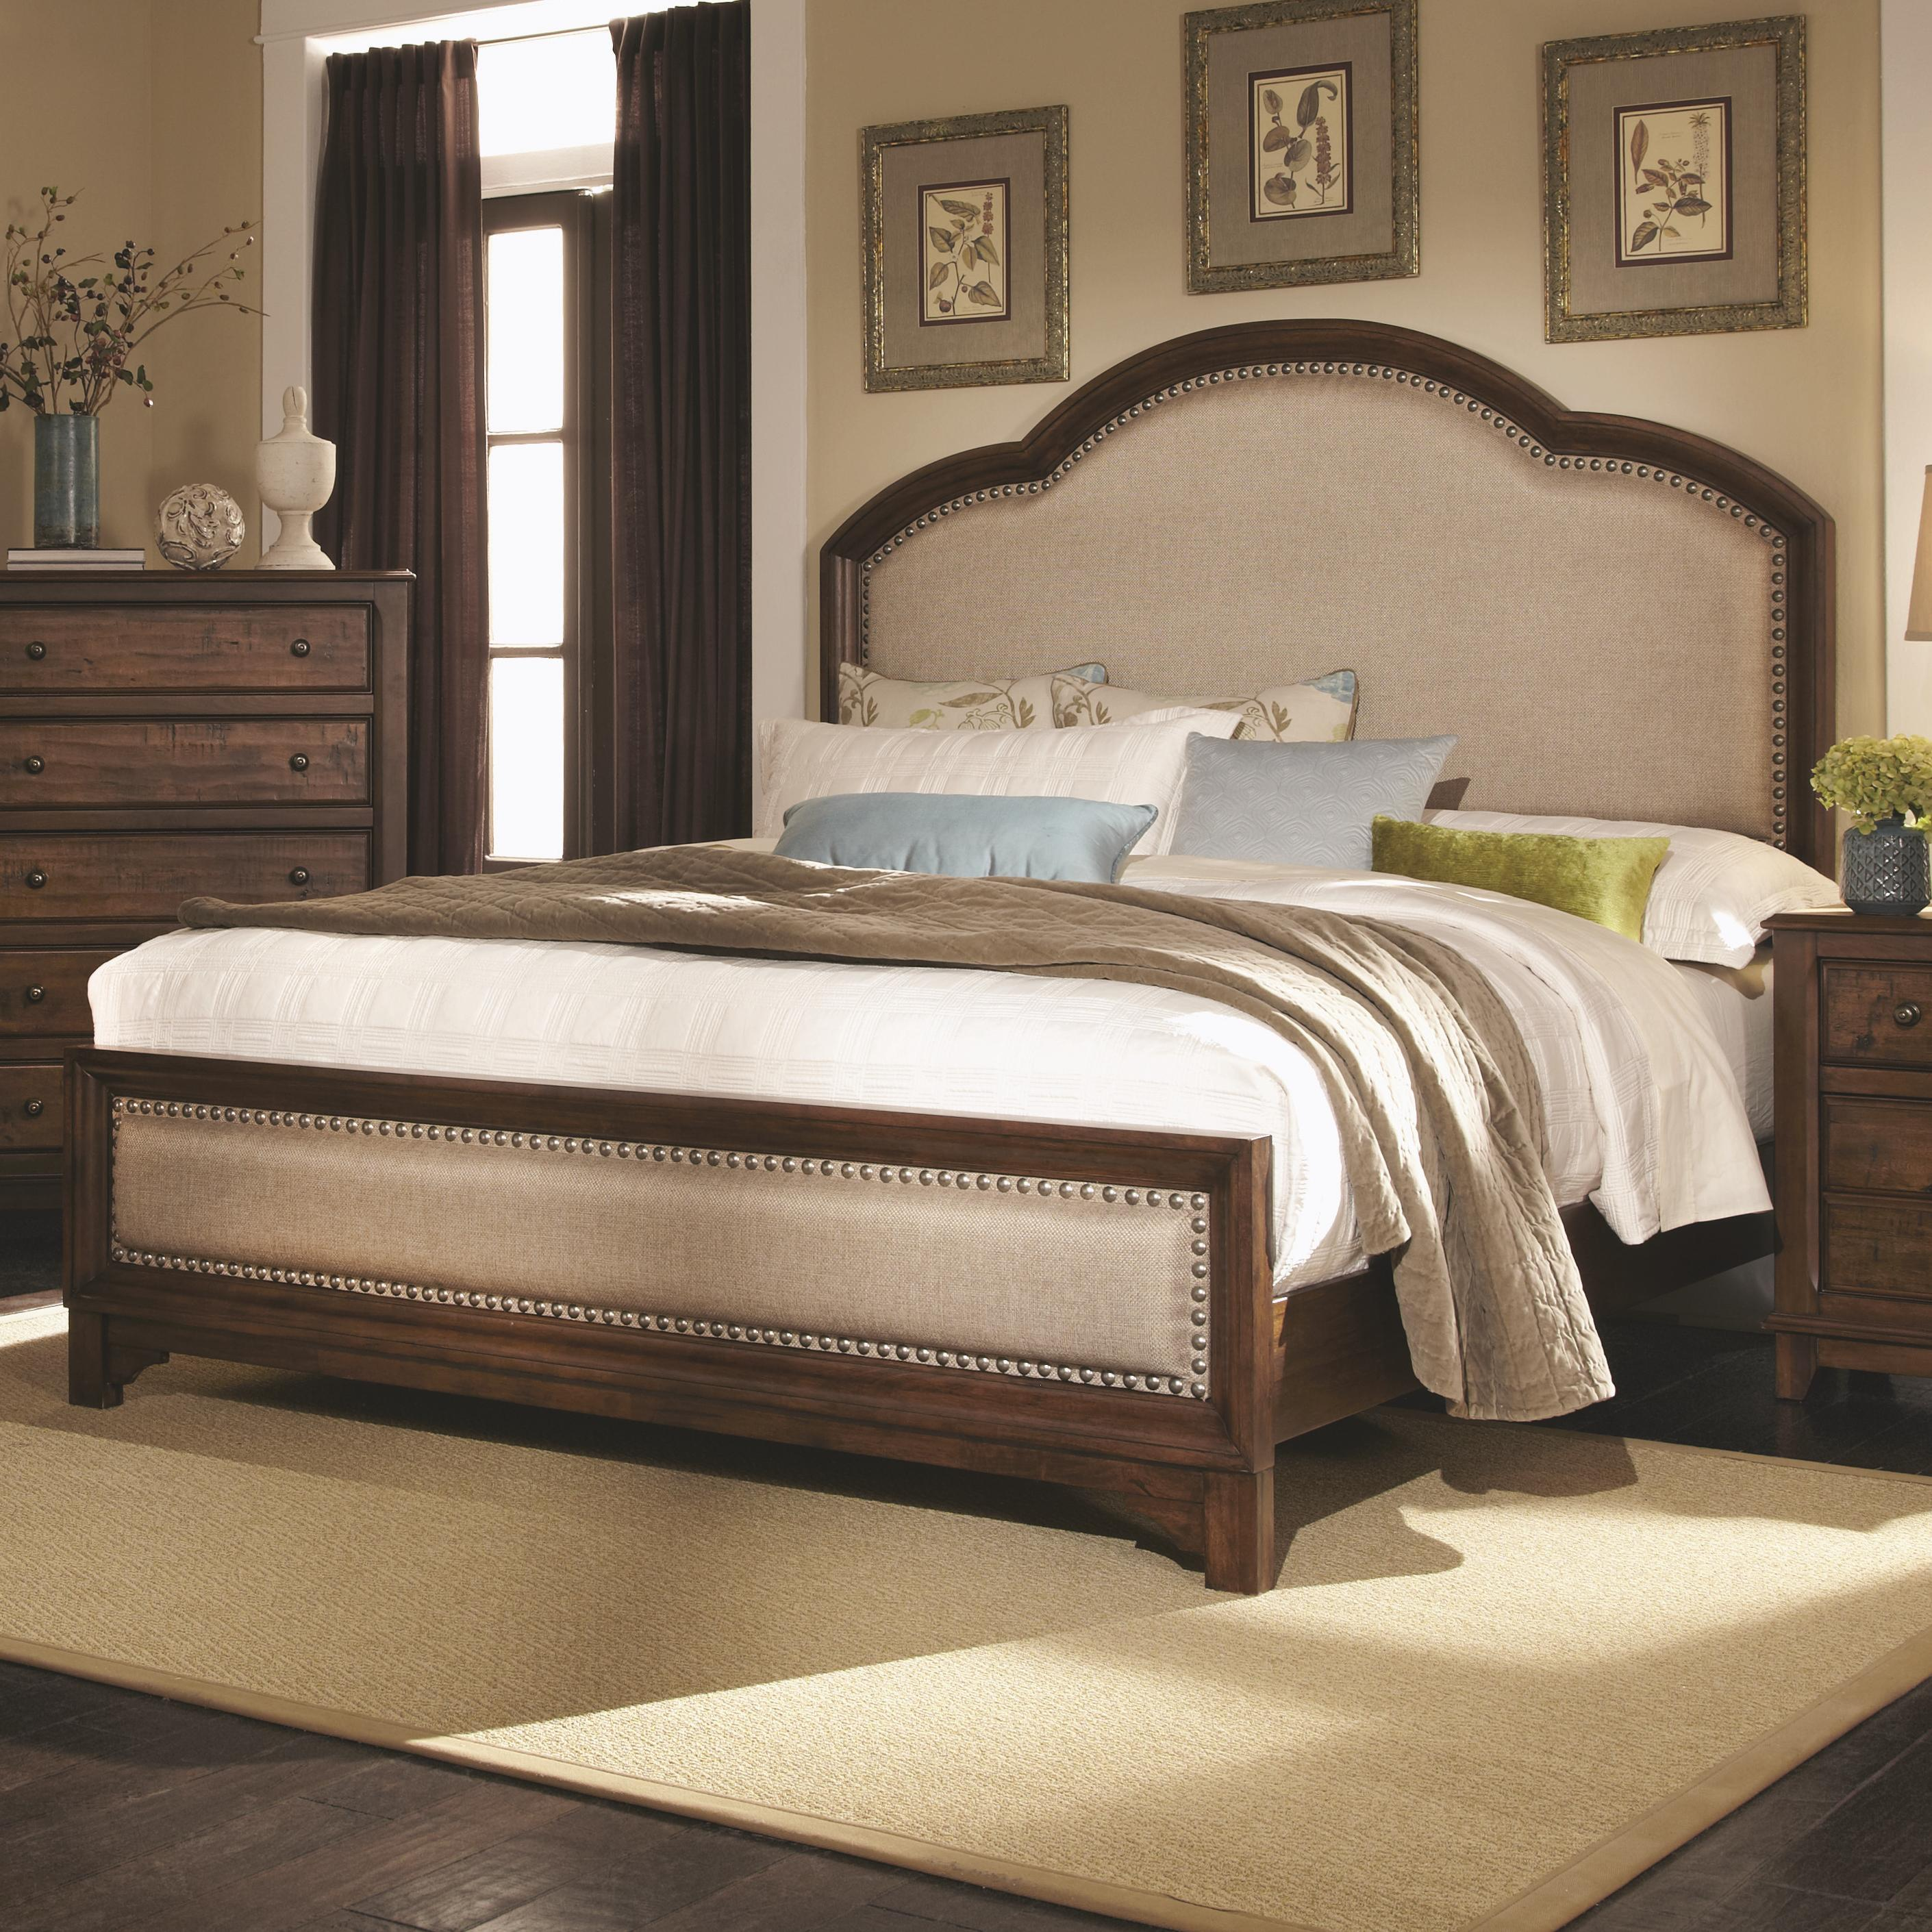 Laughton Queen Upholstered Bed by Coaster at Lapeer Furniture & Mattress Center